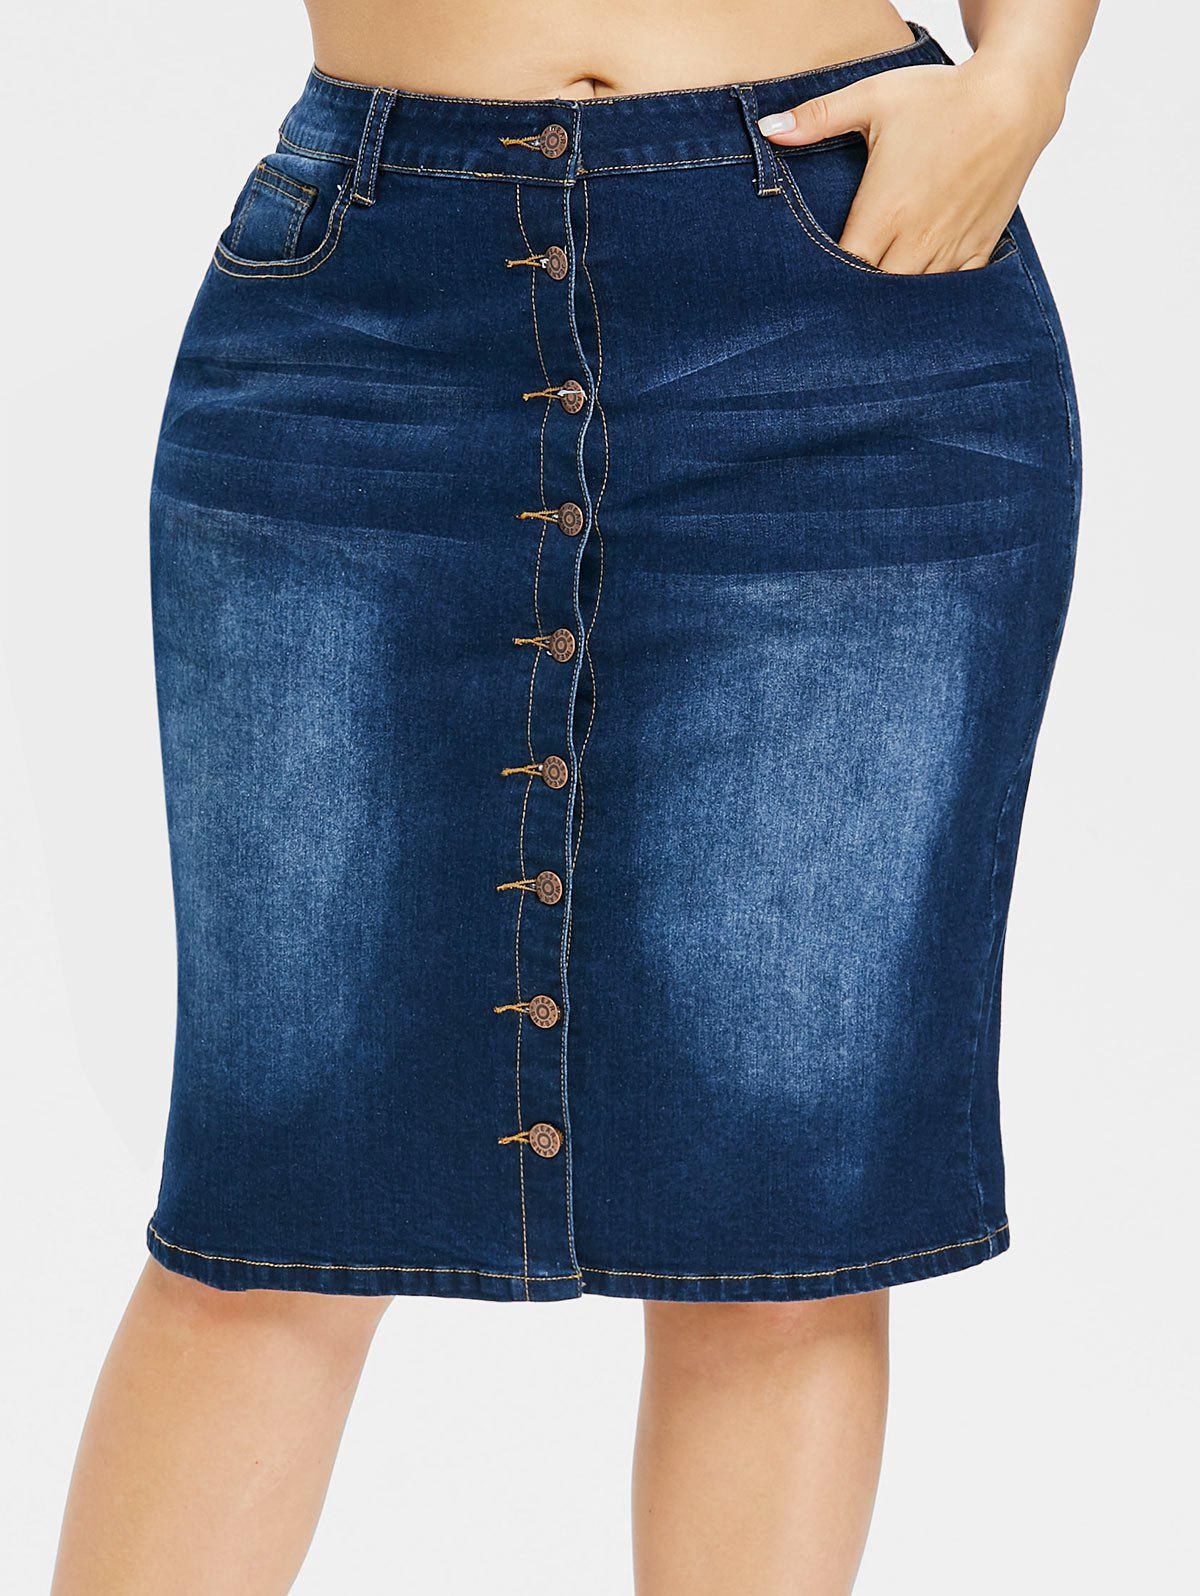 Plus Size Button Up Knee Length Denim Skirt - DEEP BLUE 5X